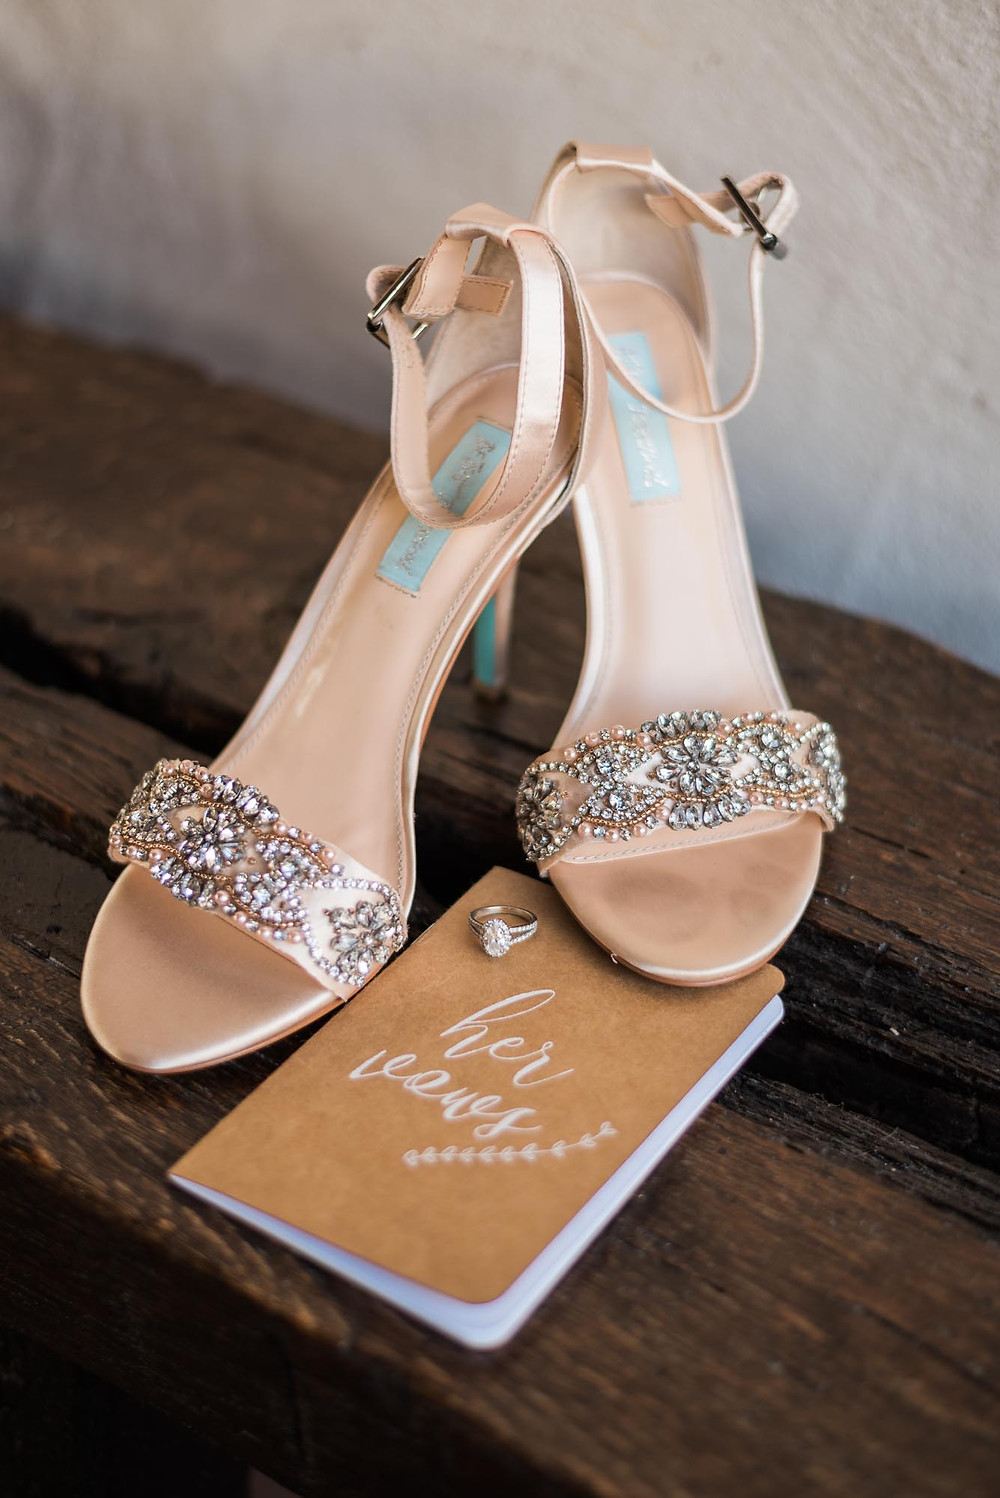 Betsey Johnson Bridal Shoes and Rustic Vow Book